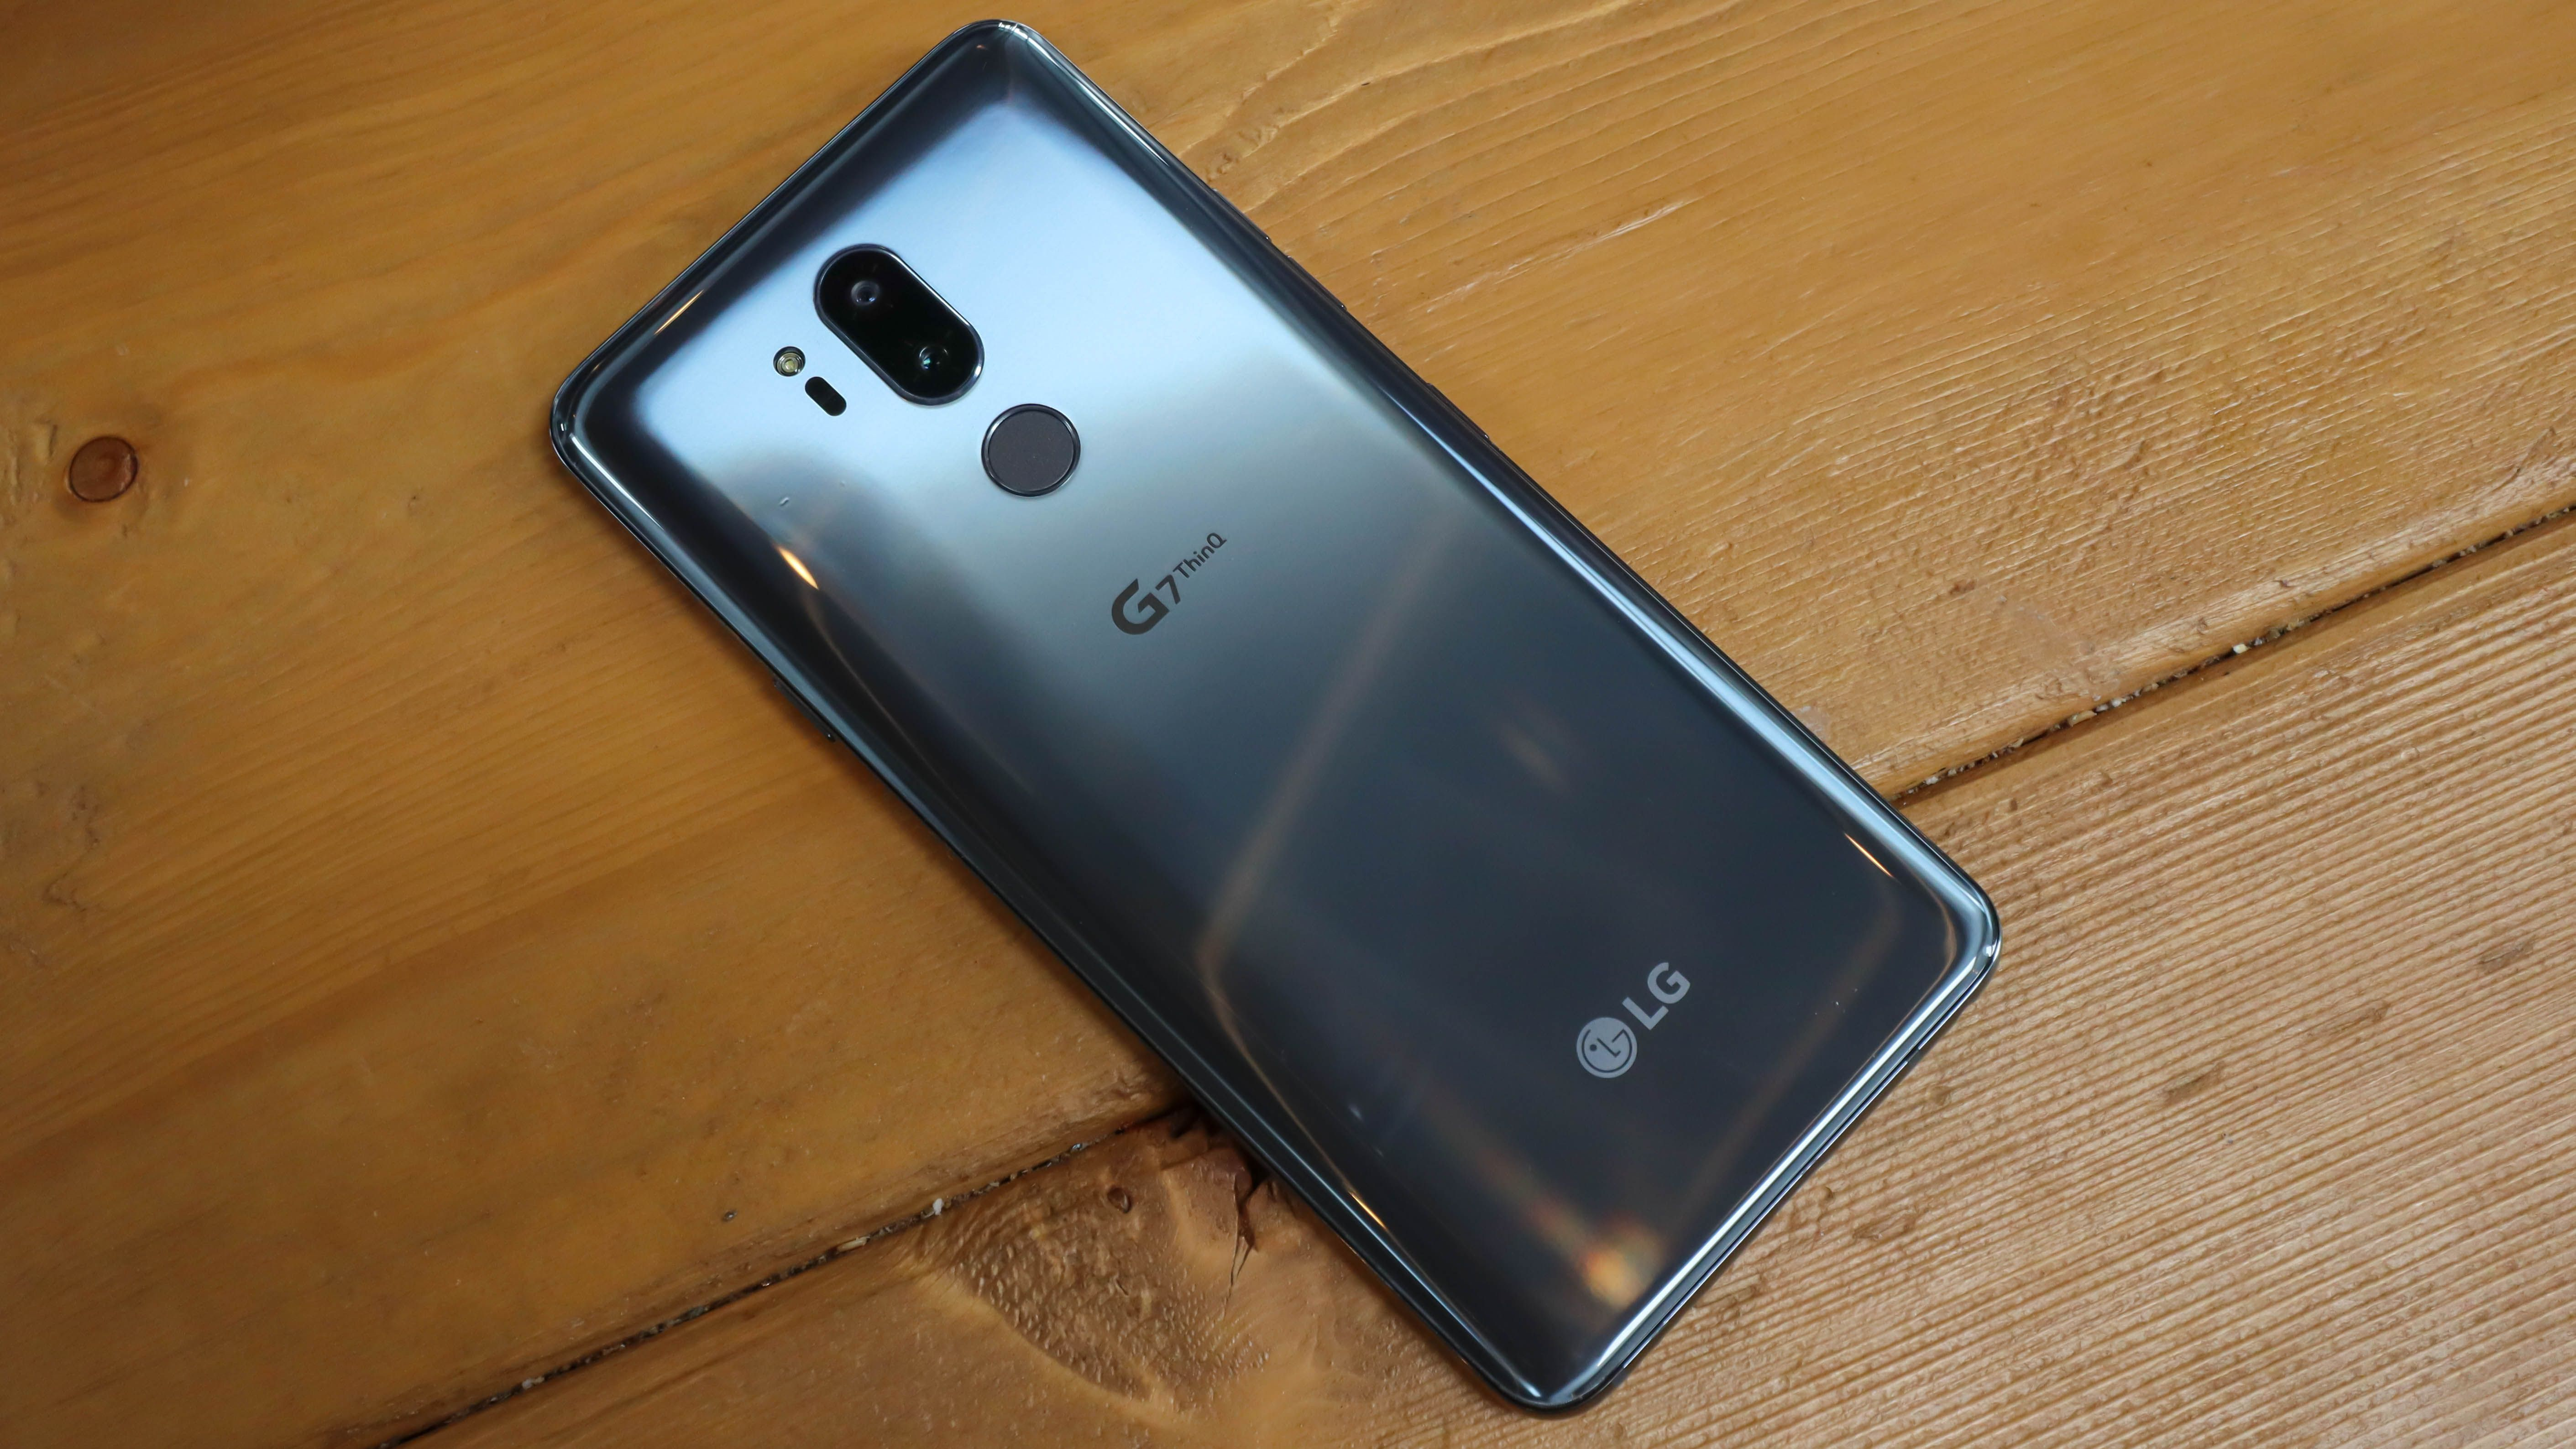 LG G7 ThinQ vs LG G6 | Android Devices | Lg g6, Latest phones, Phone